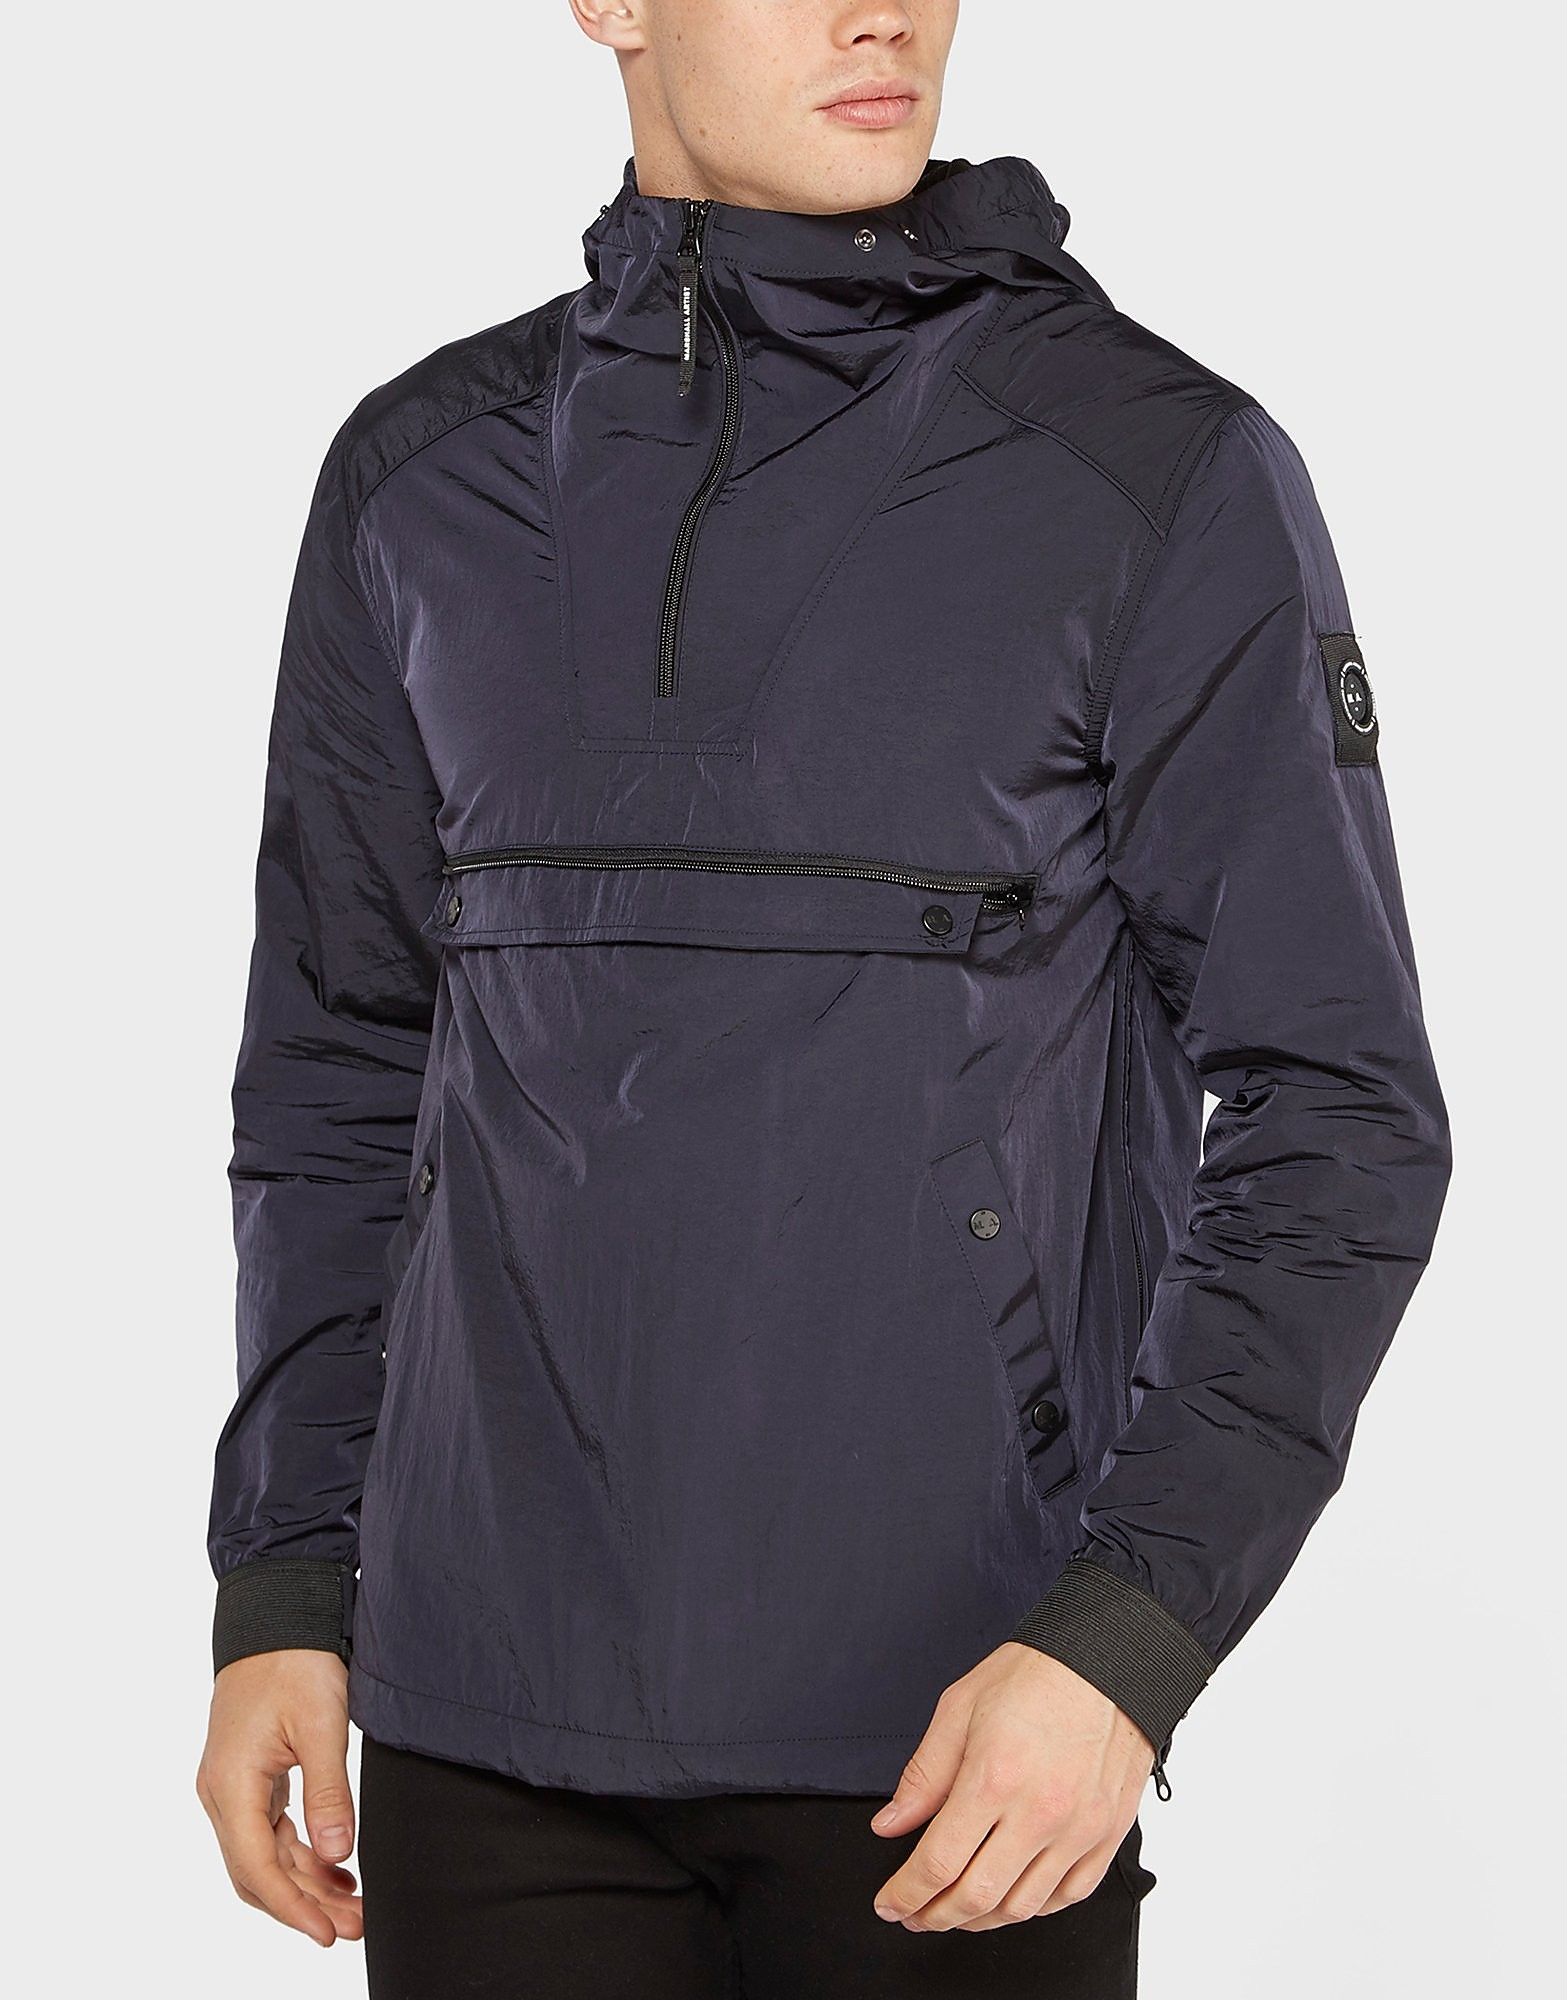 Marshall Artist Liquid Nylon Overhead Jacket